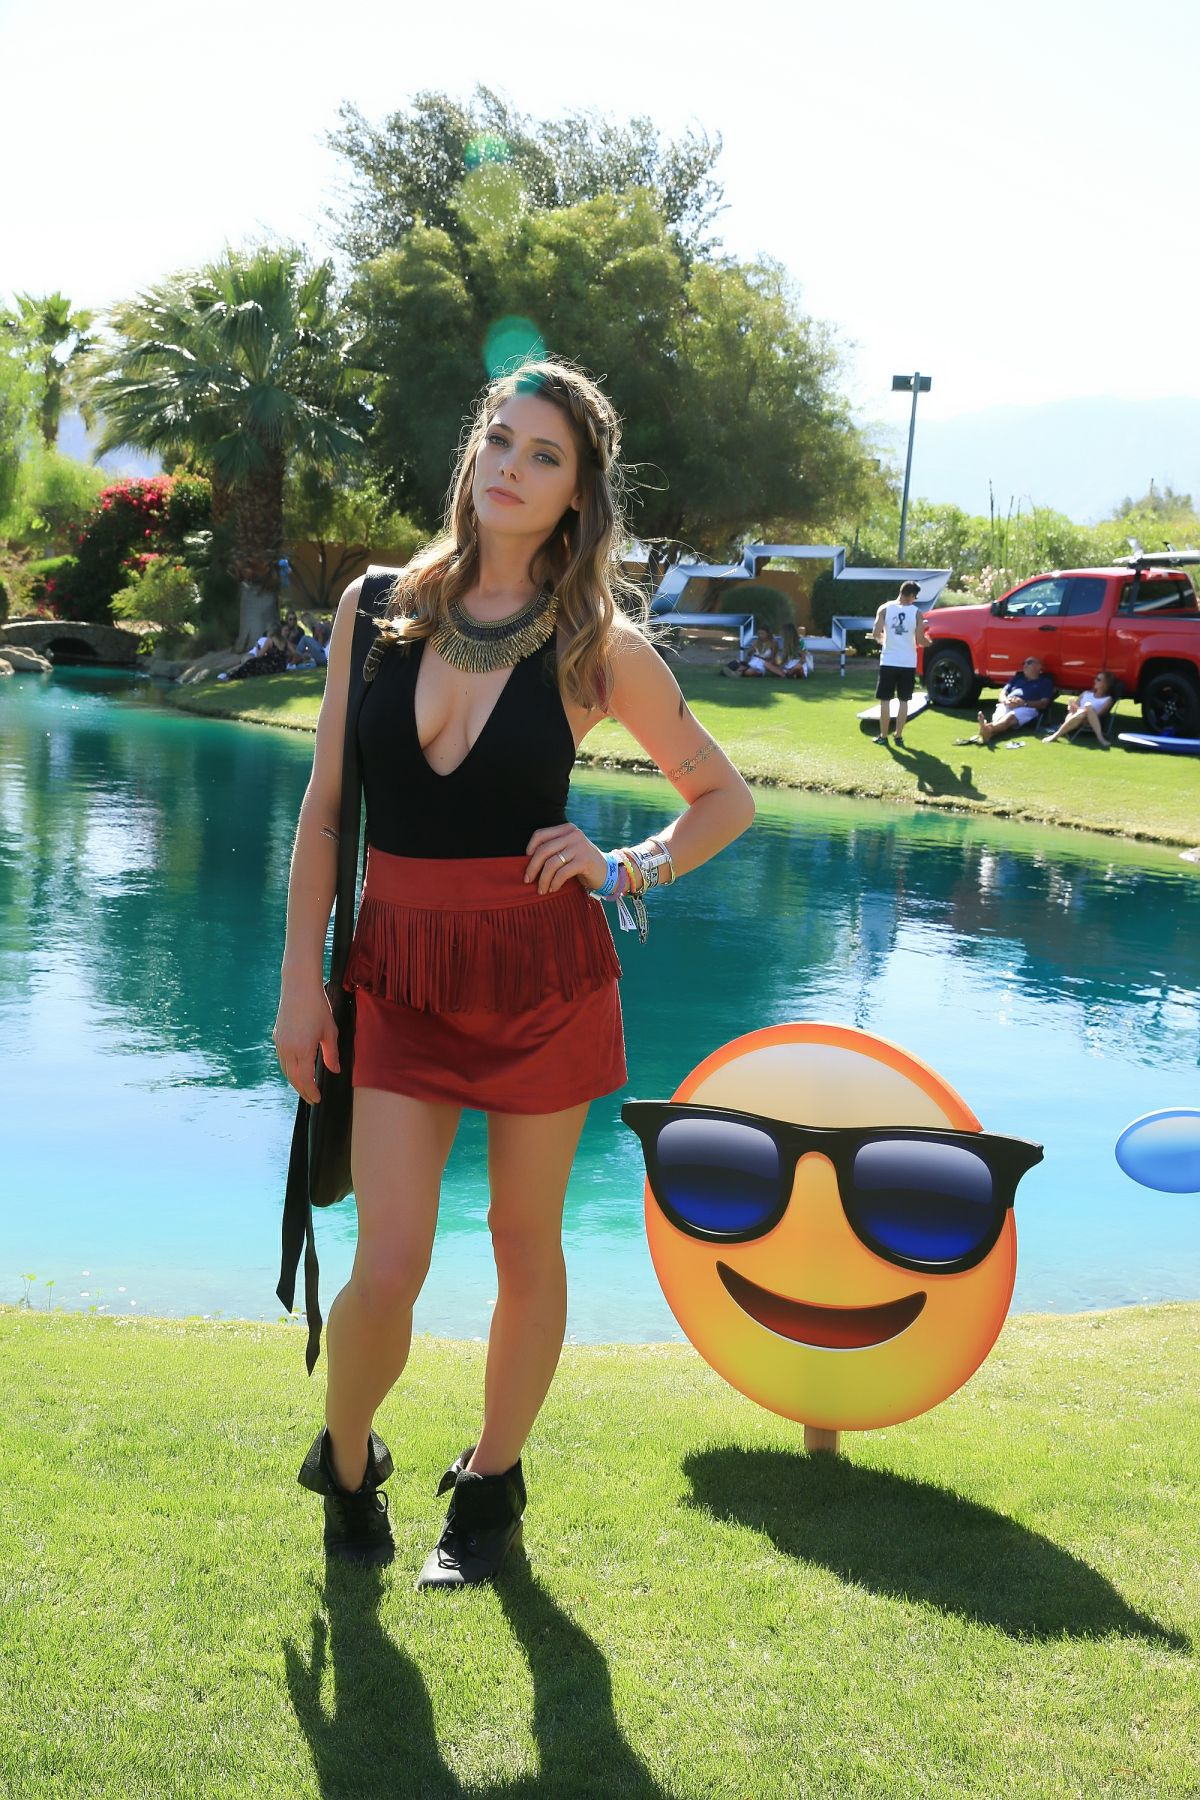 ASHLEY GREENE at Bootsy Bellows Pool Party in Rancho Mirage 04/16/2016